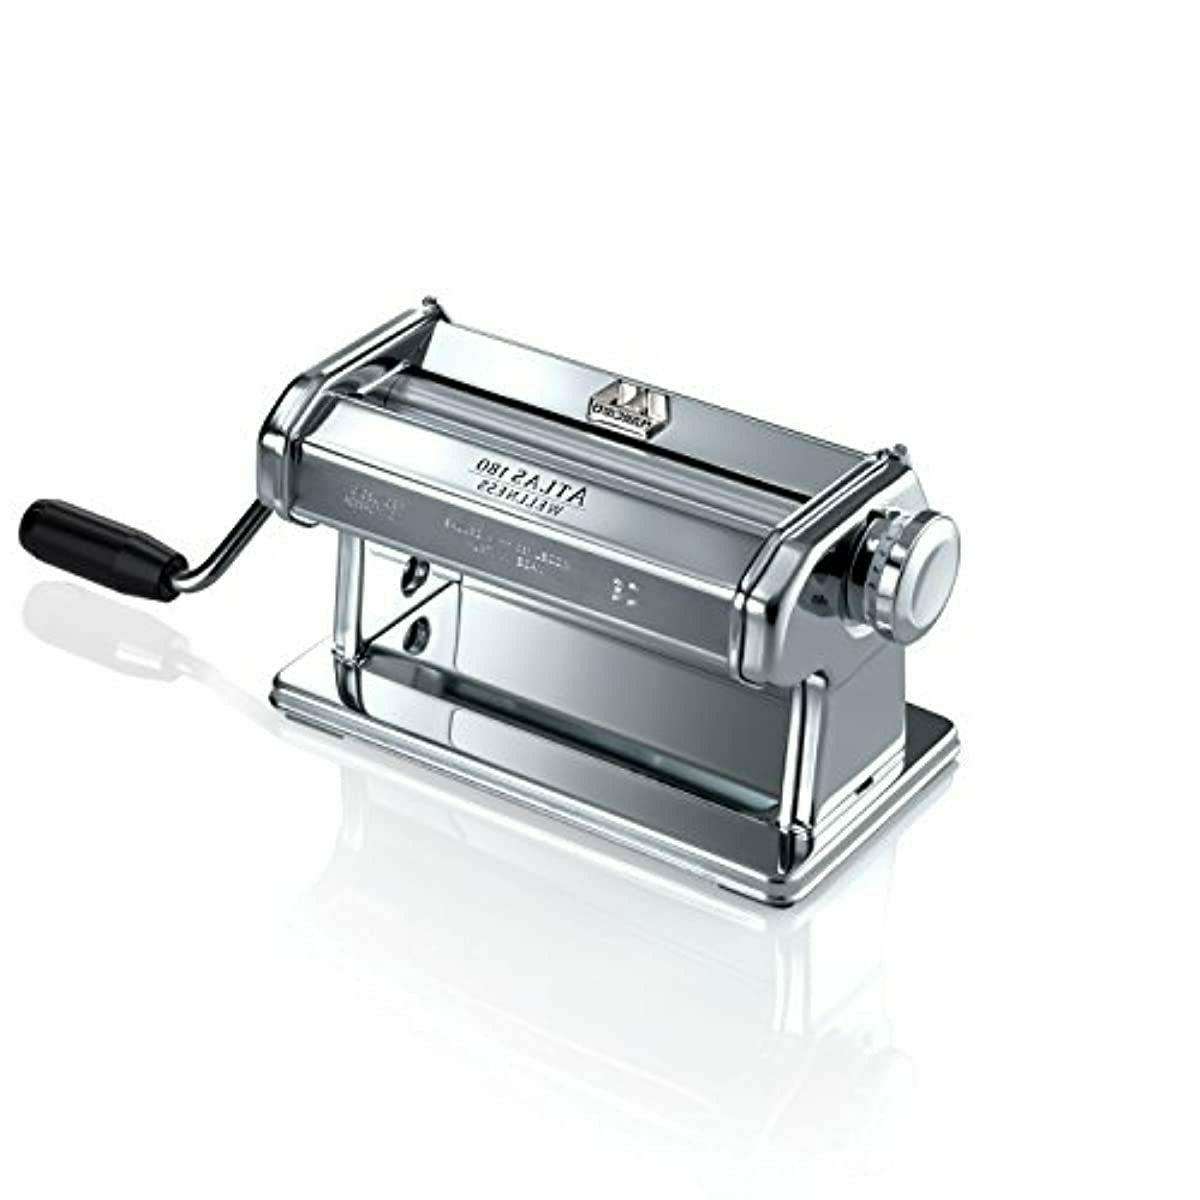 Marcato Dough Roller, Made Italy, Wide 180mm